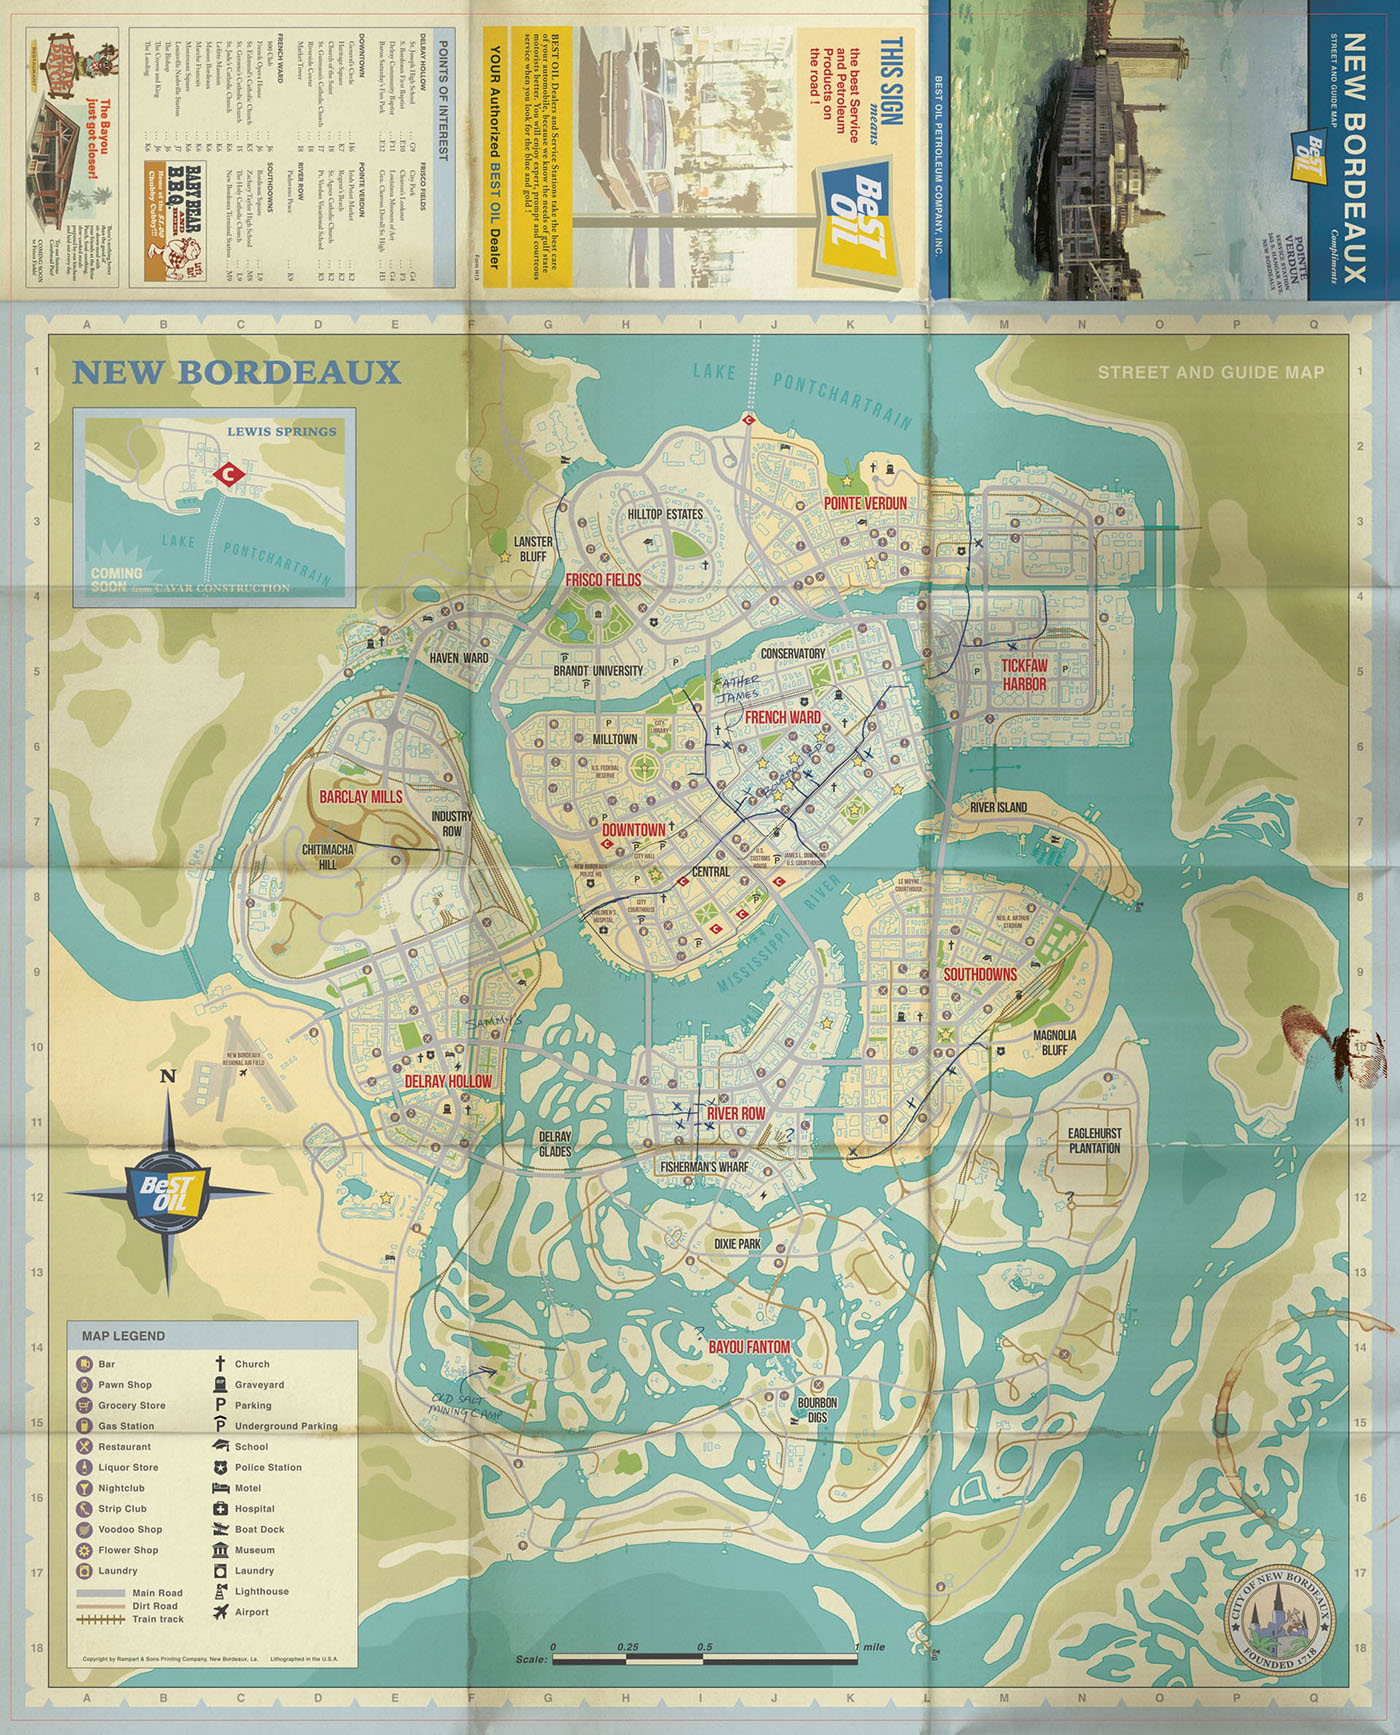 Mafia iii world map on behance semi final world map design for mafia iii exact layouts and folds were based on established print templates for xbox one ps4 and pc box sizes gumiabroncs Images